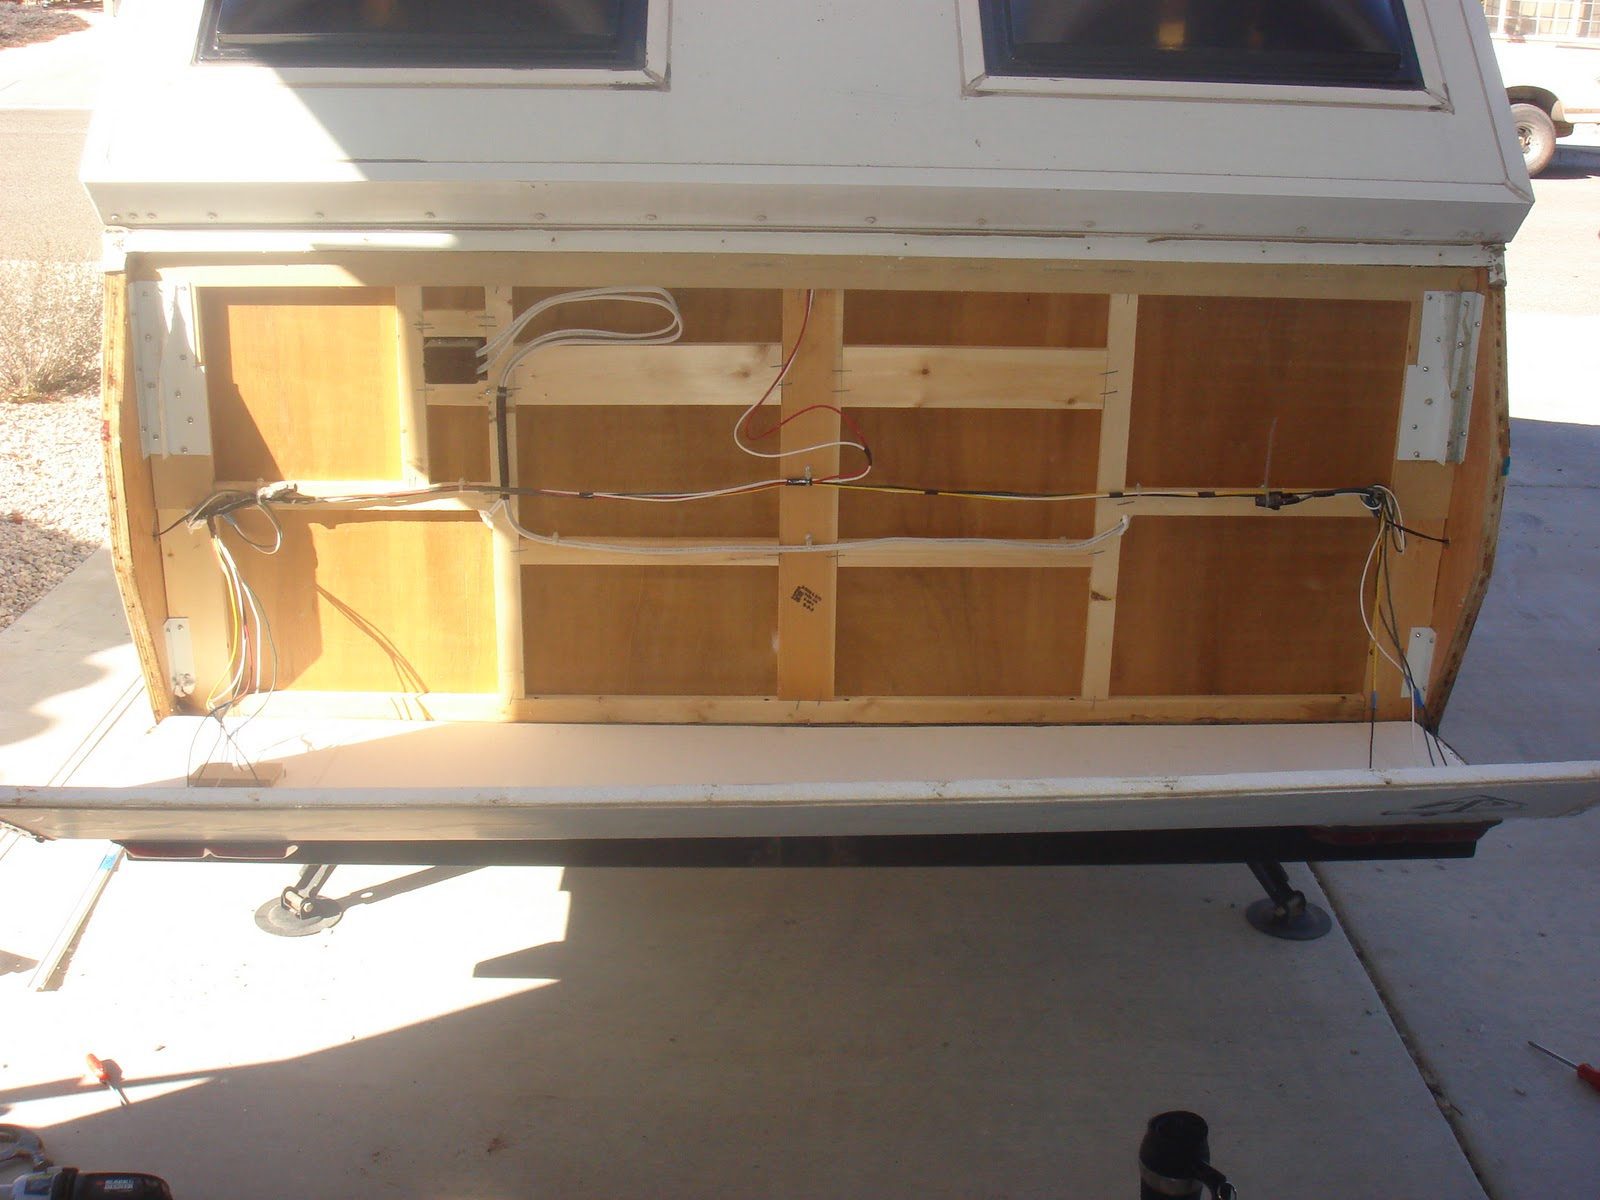 My 2001 Chalet Camper Adventures Floor Replacement Day One